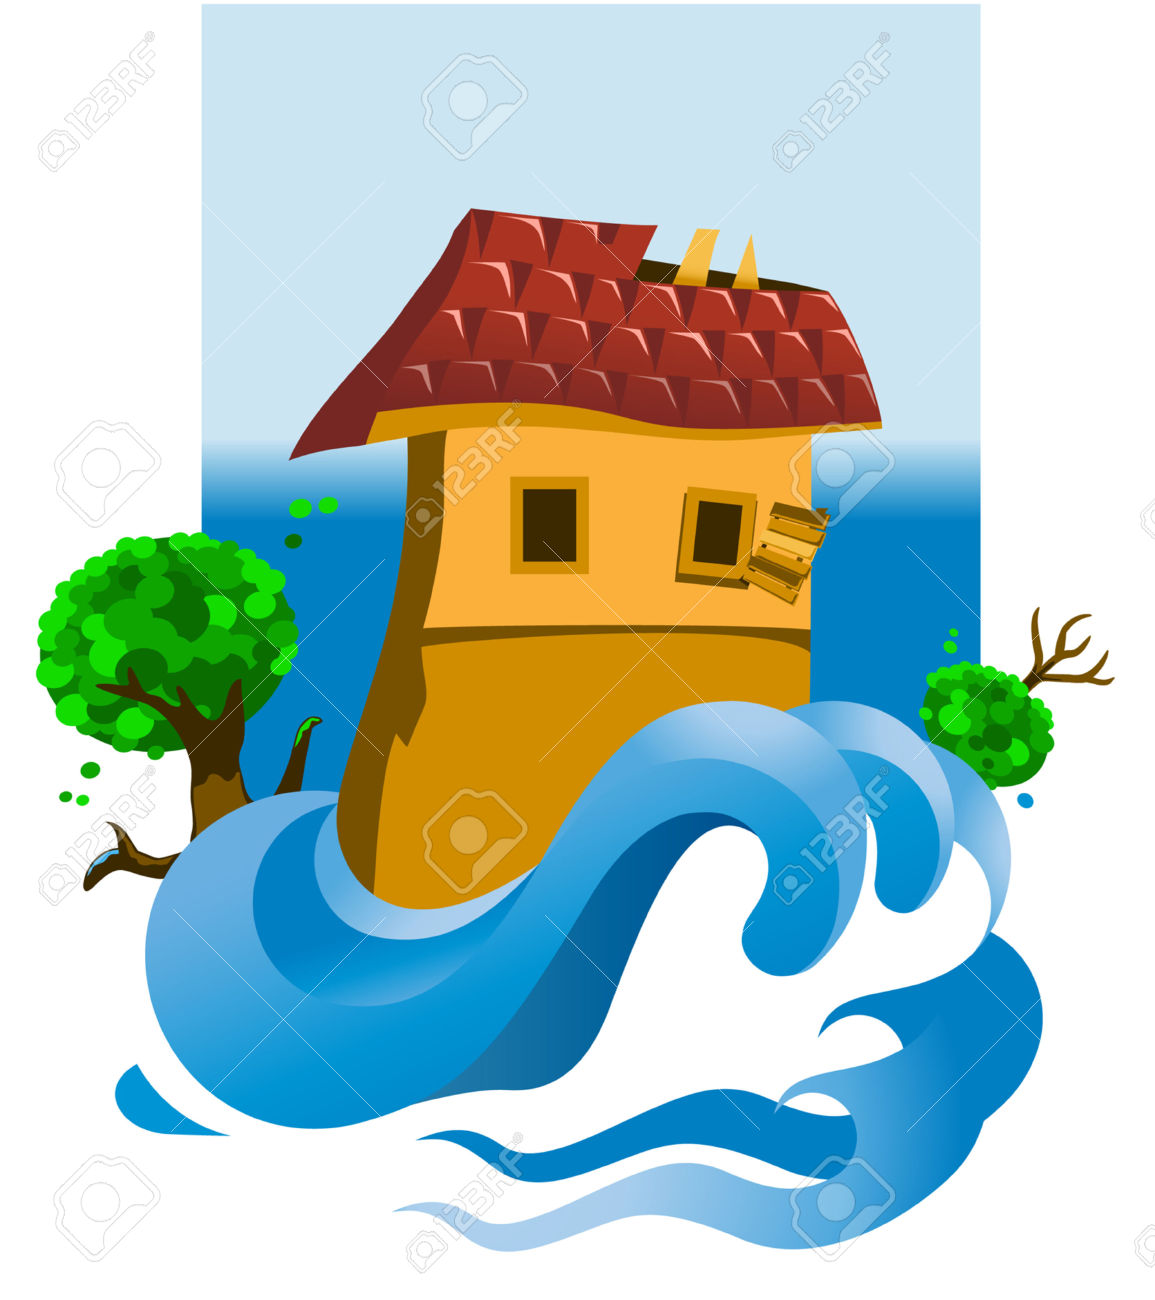 Illustration Of A Flooded House Royalty Free Cliparts, Vectors.